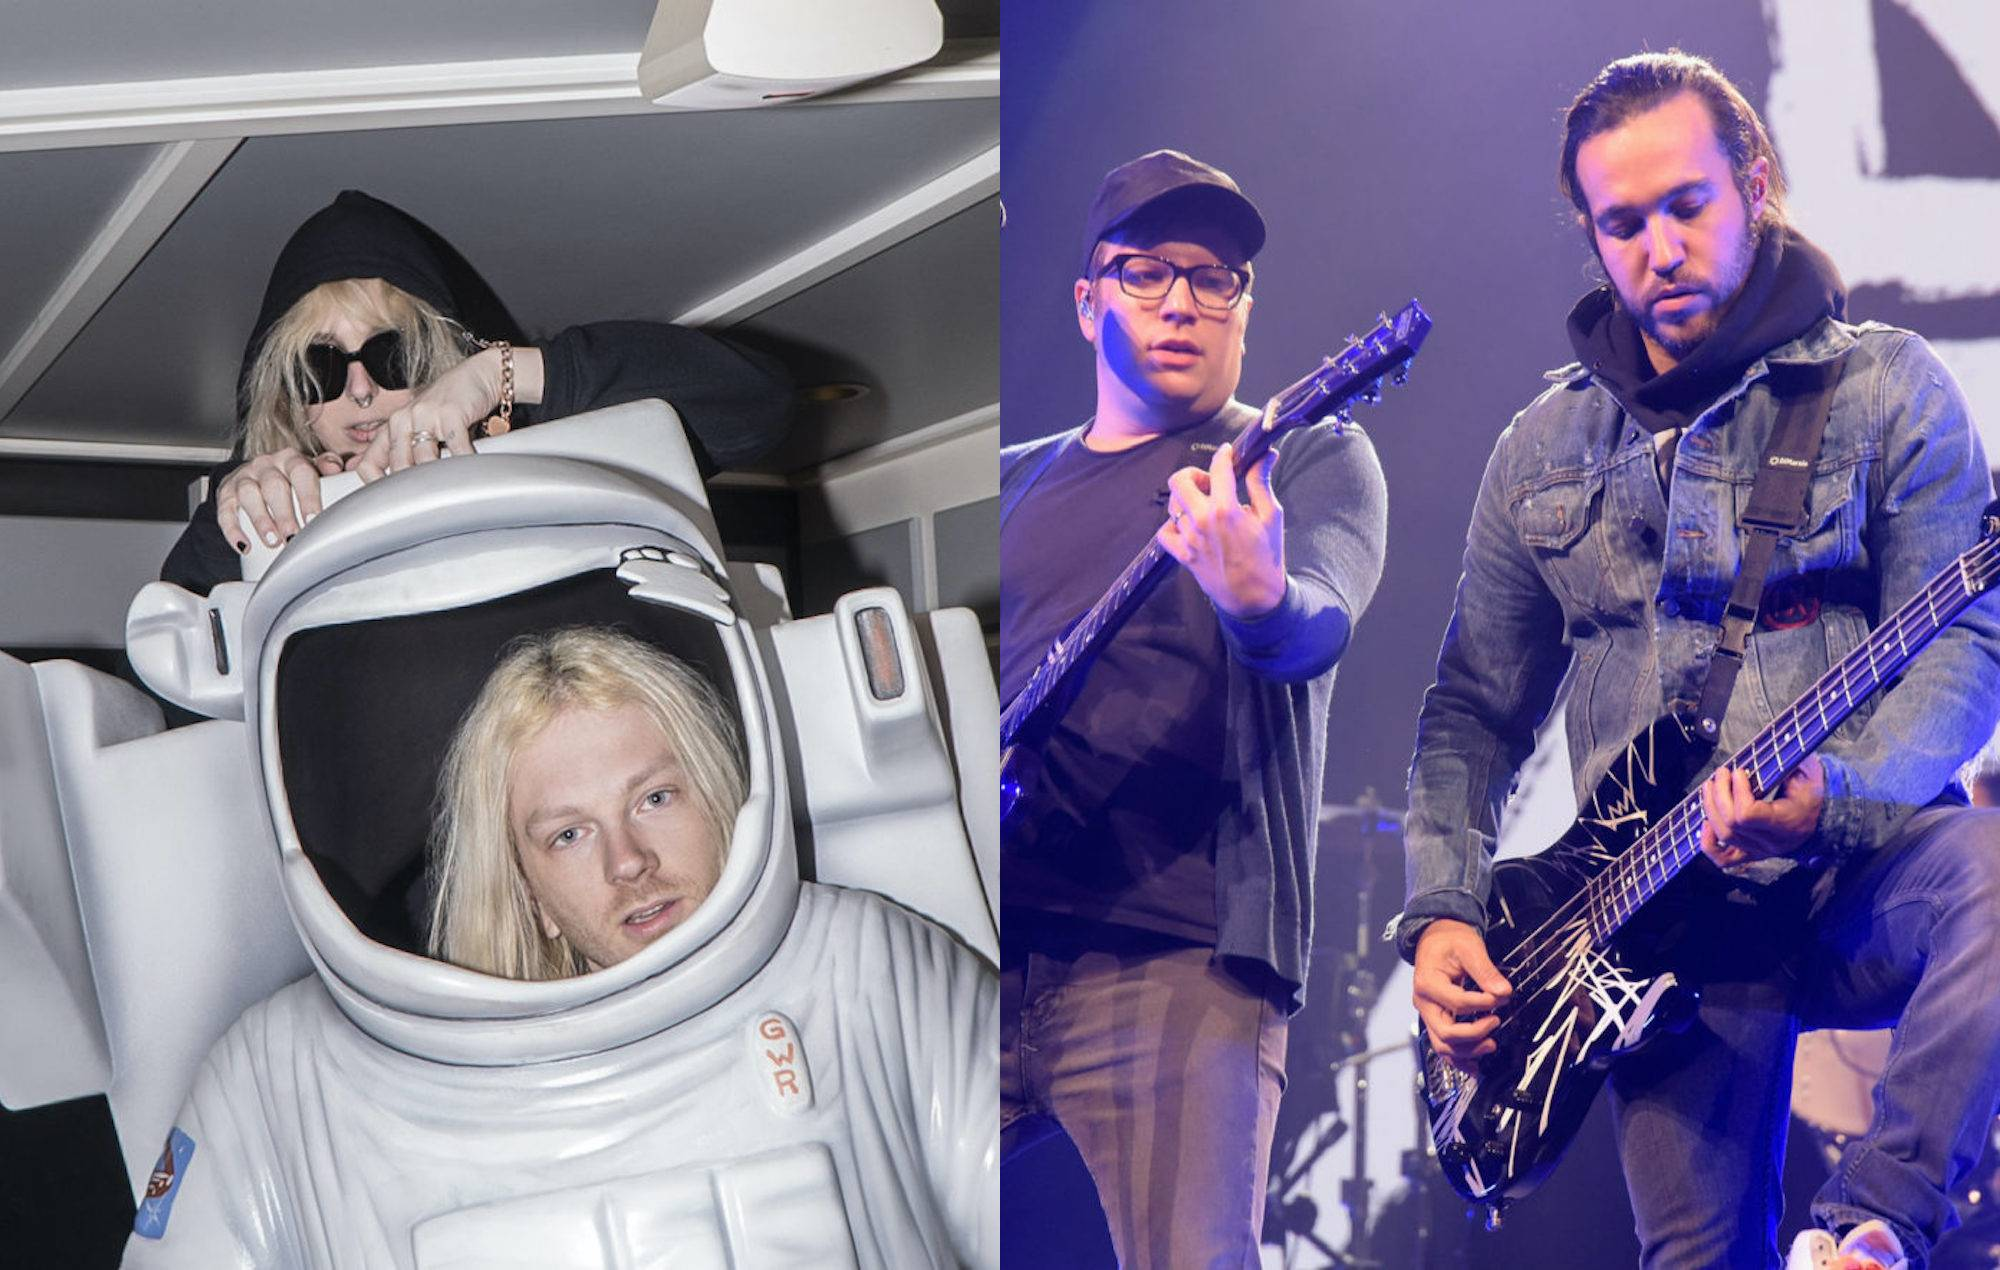 100 Gecs discuss collaborating with Fall Out Boy on new album